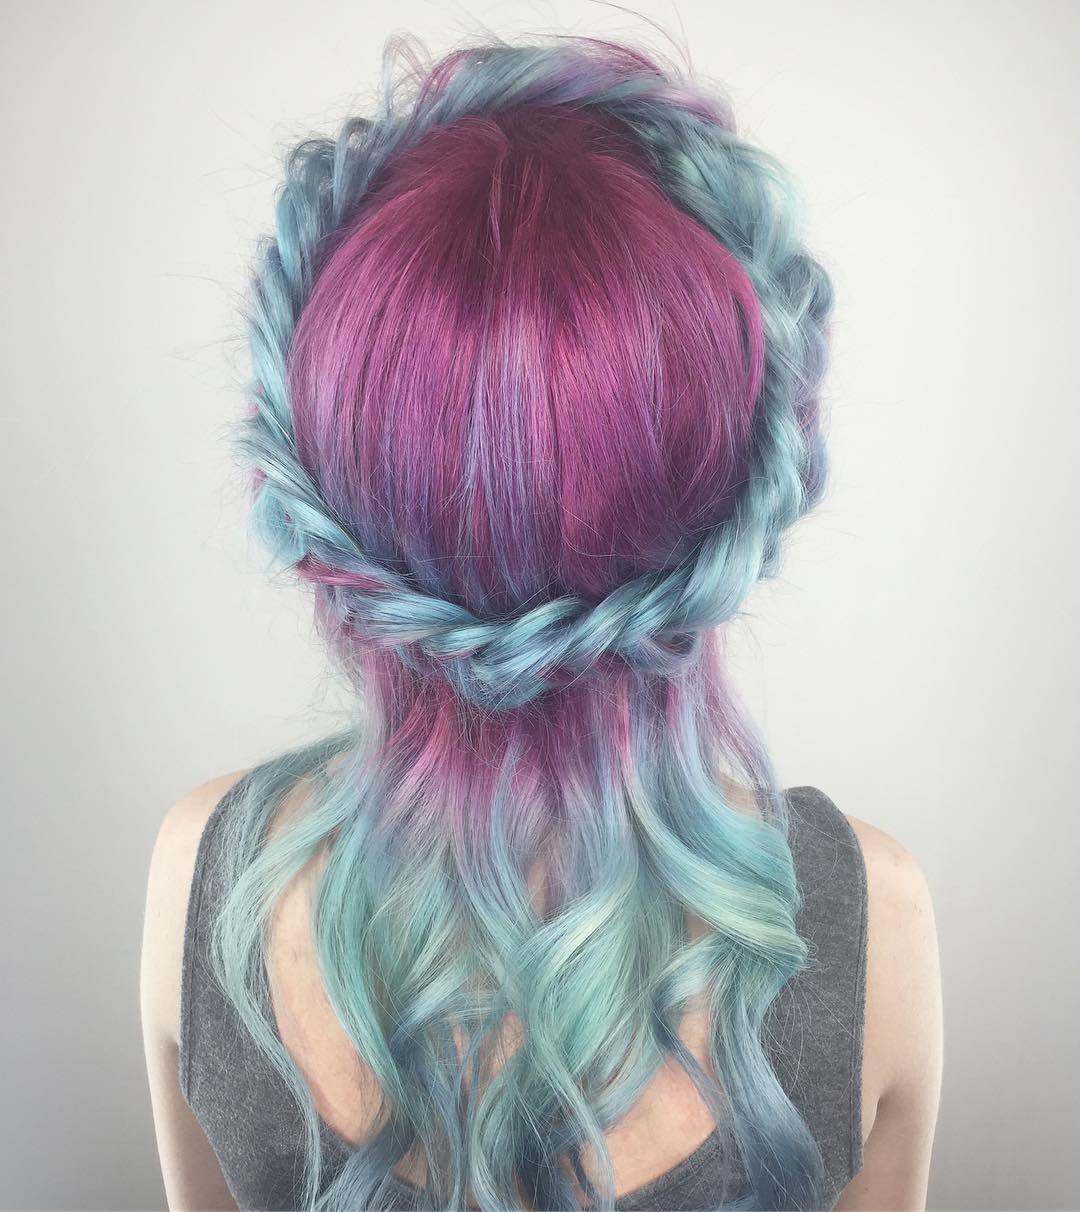 chitabeseau-unicorn-hair-crown-braid-purple-and-blue-hair-color